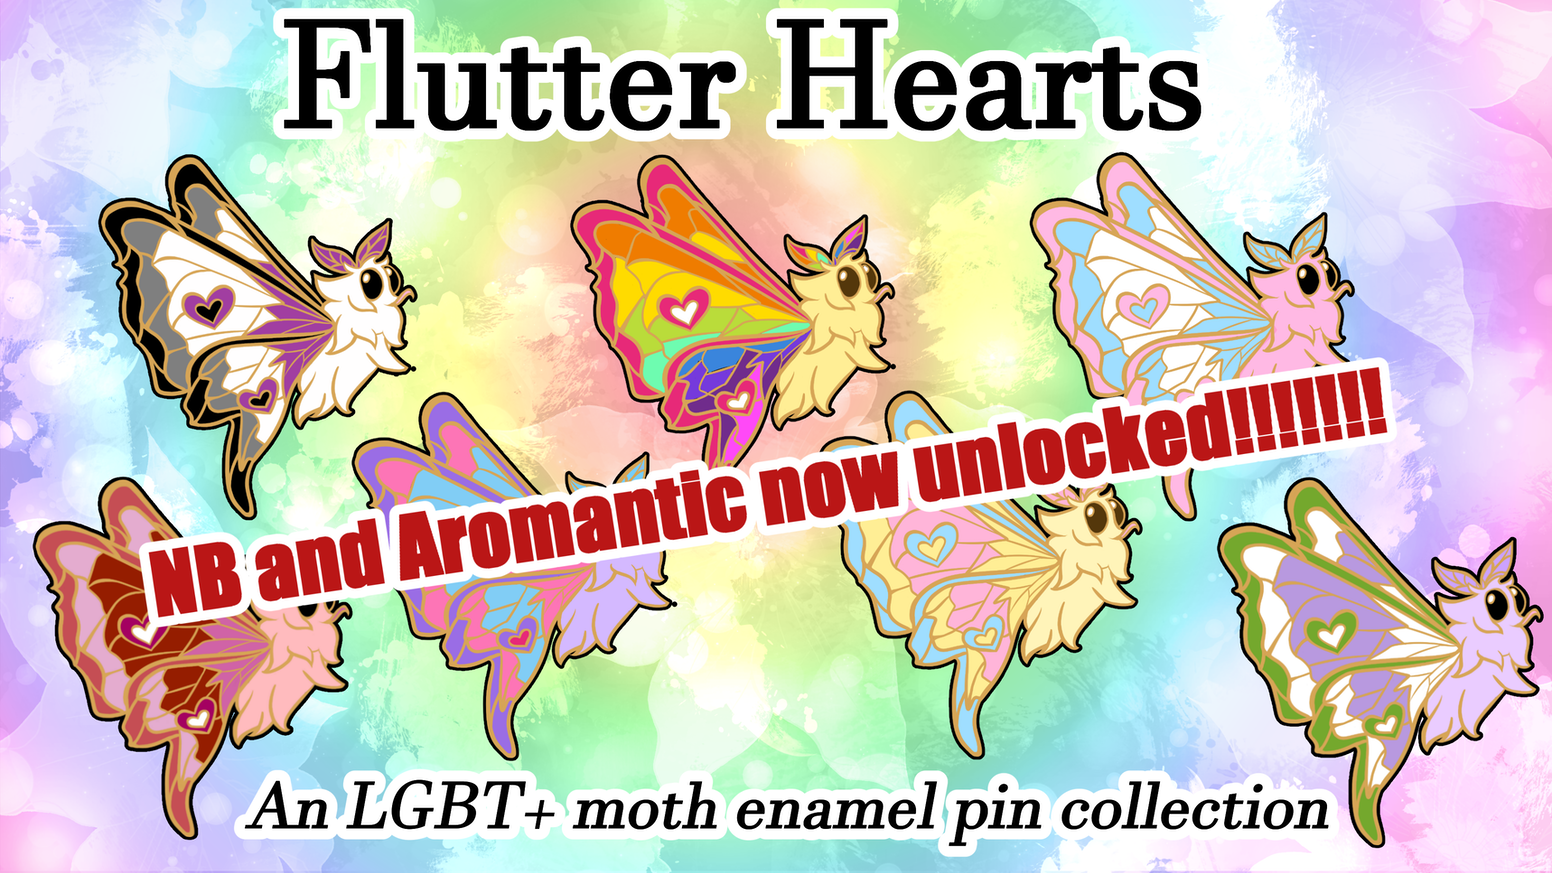 Moths are cute as heck and the only thing cuter is the queer community. Let's mash 'em together for some apo-cute-alyptic enamel pins